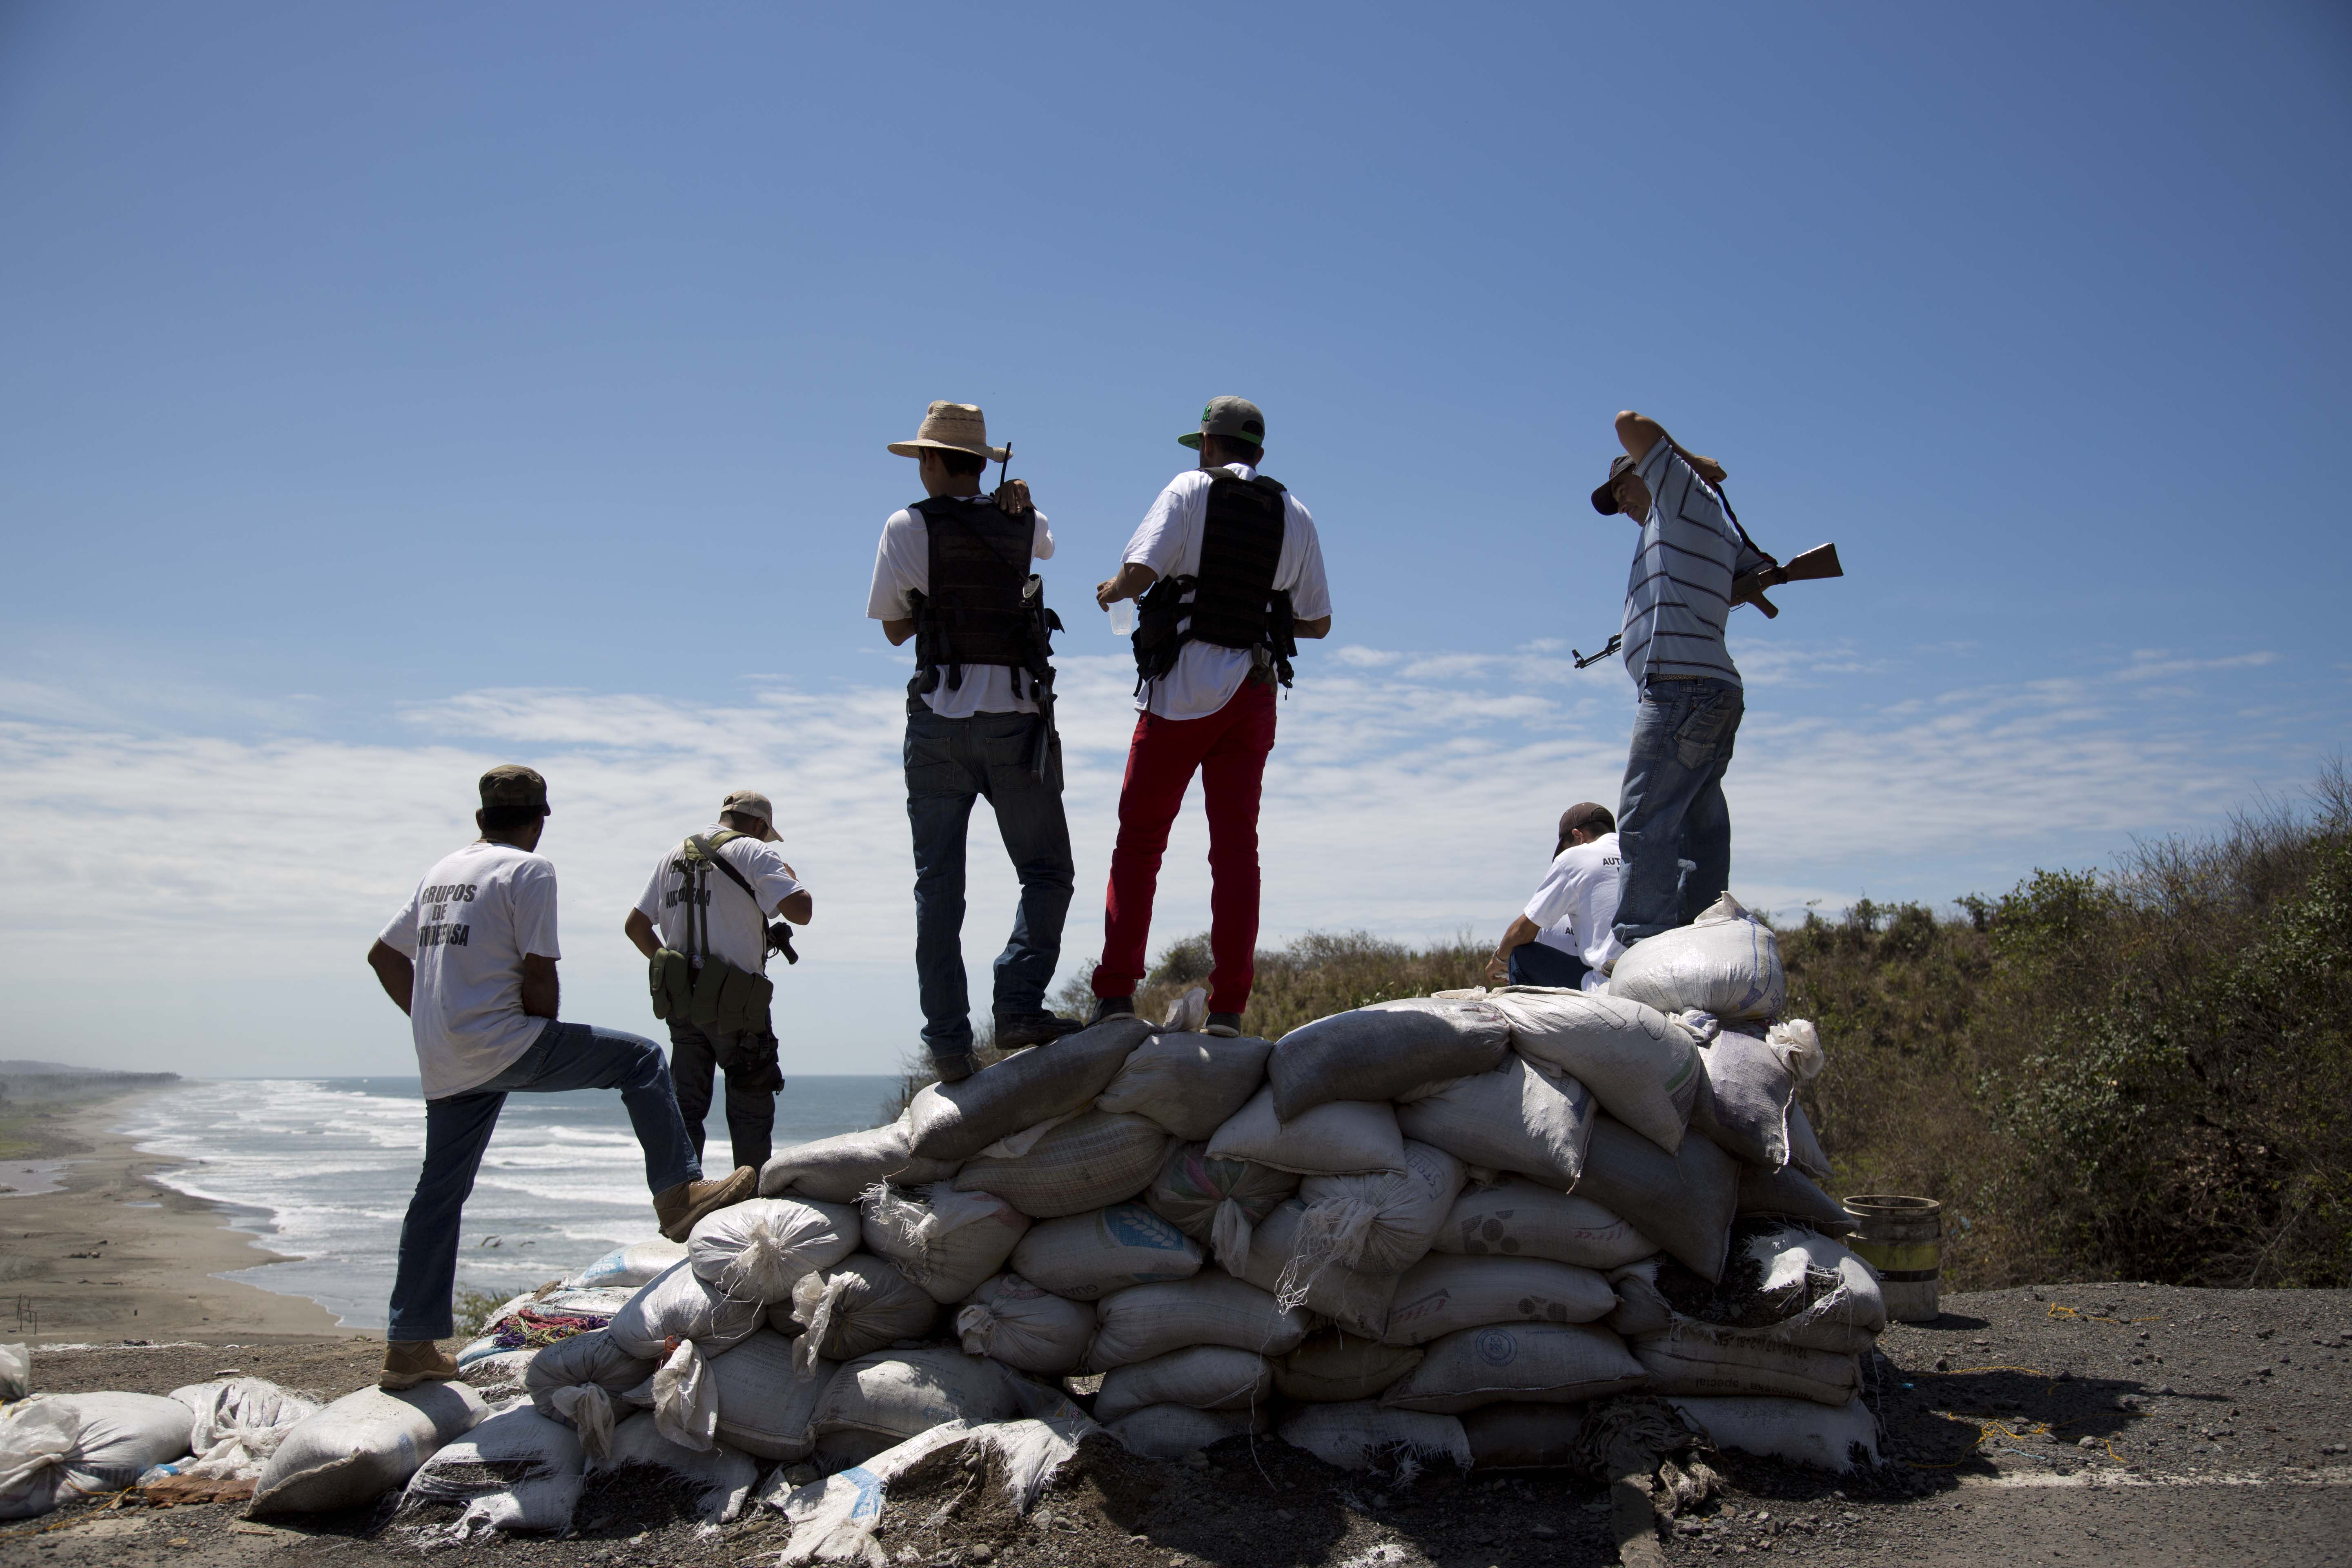 Armed men belonging to the Self-Defense Council of Michoacan (CAM) look out toward the sea as they guard a checkpoint set up by the self-defense group in Chuquiapan on the outskirts of the seaport of Lazaro Cardenas in western Mexico, Friday, May 9, 2014. Mexico's government plans on Saturday to begin demobilizing the vigilante movement that largely expelled the Knights Templar cartel when state and local authorities couldn't. But tension remained on Friday in the coastal part of the state outside the port of Lazaro Cardenas, where some self-defense groups plan to continue as they are, defending their territory without registering their arms. (AP Photo/Eduardo Verdugo)